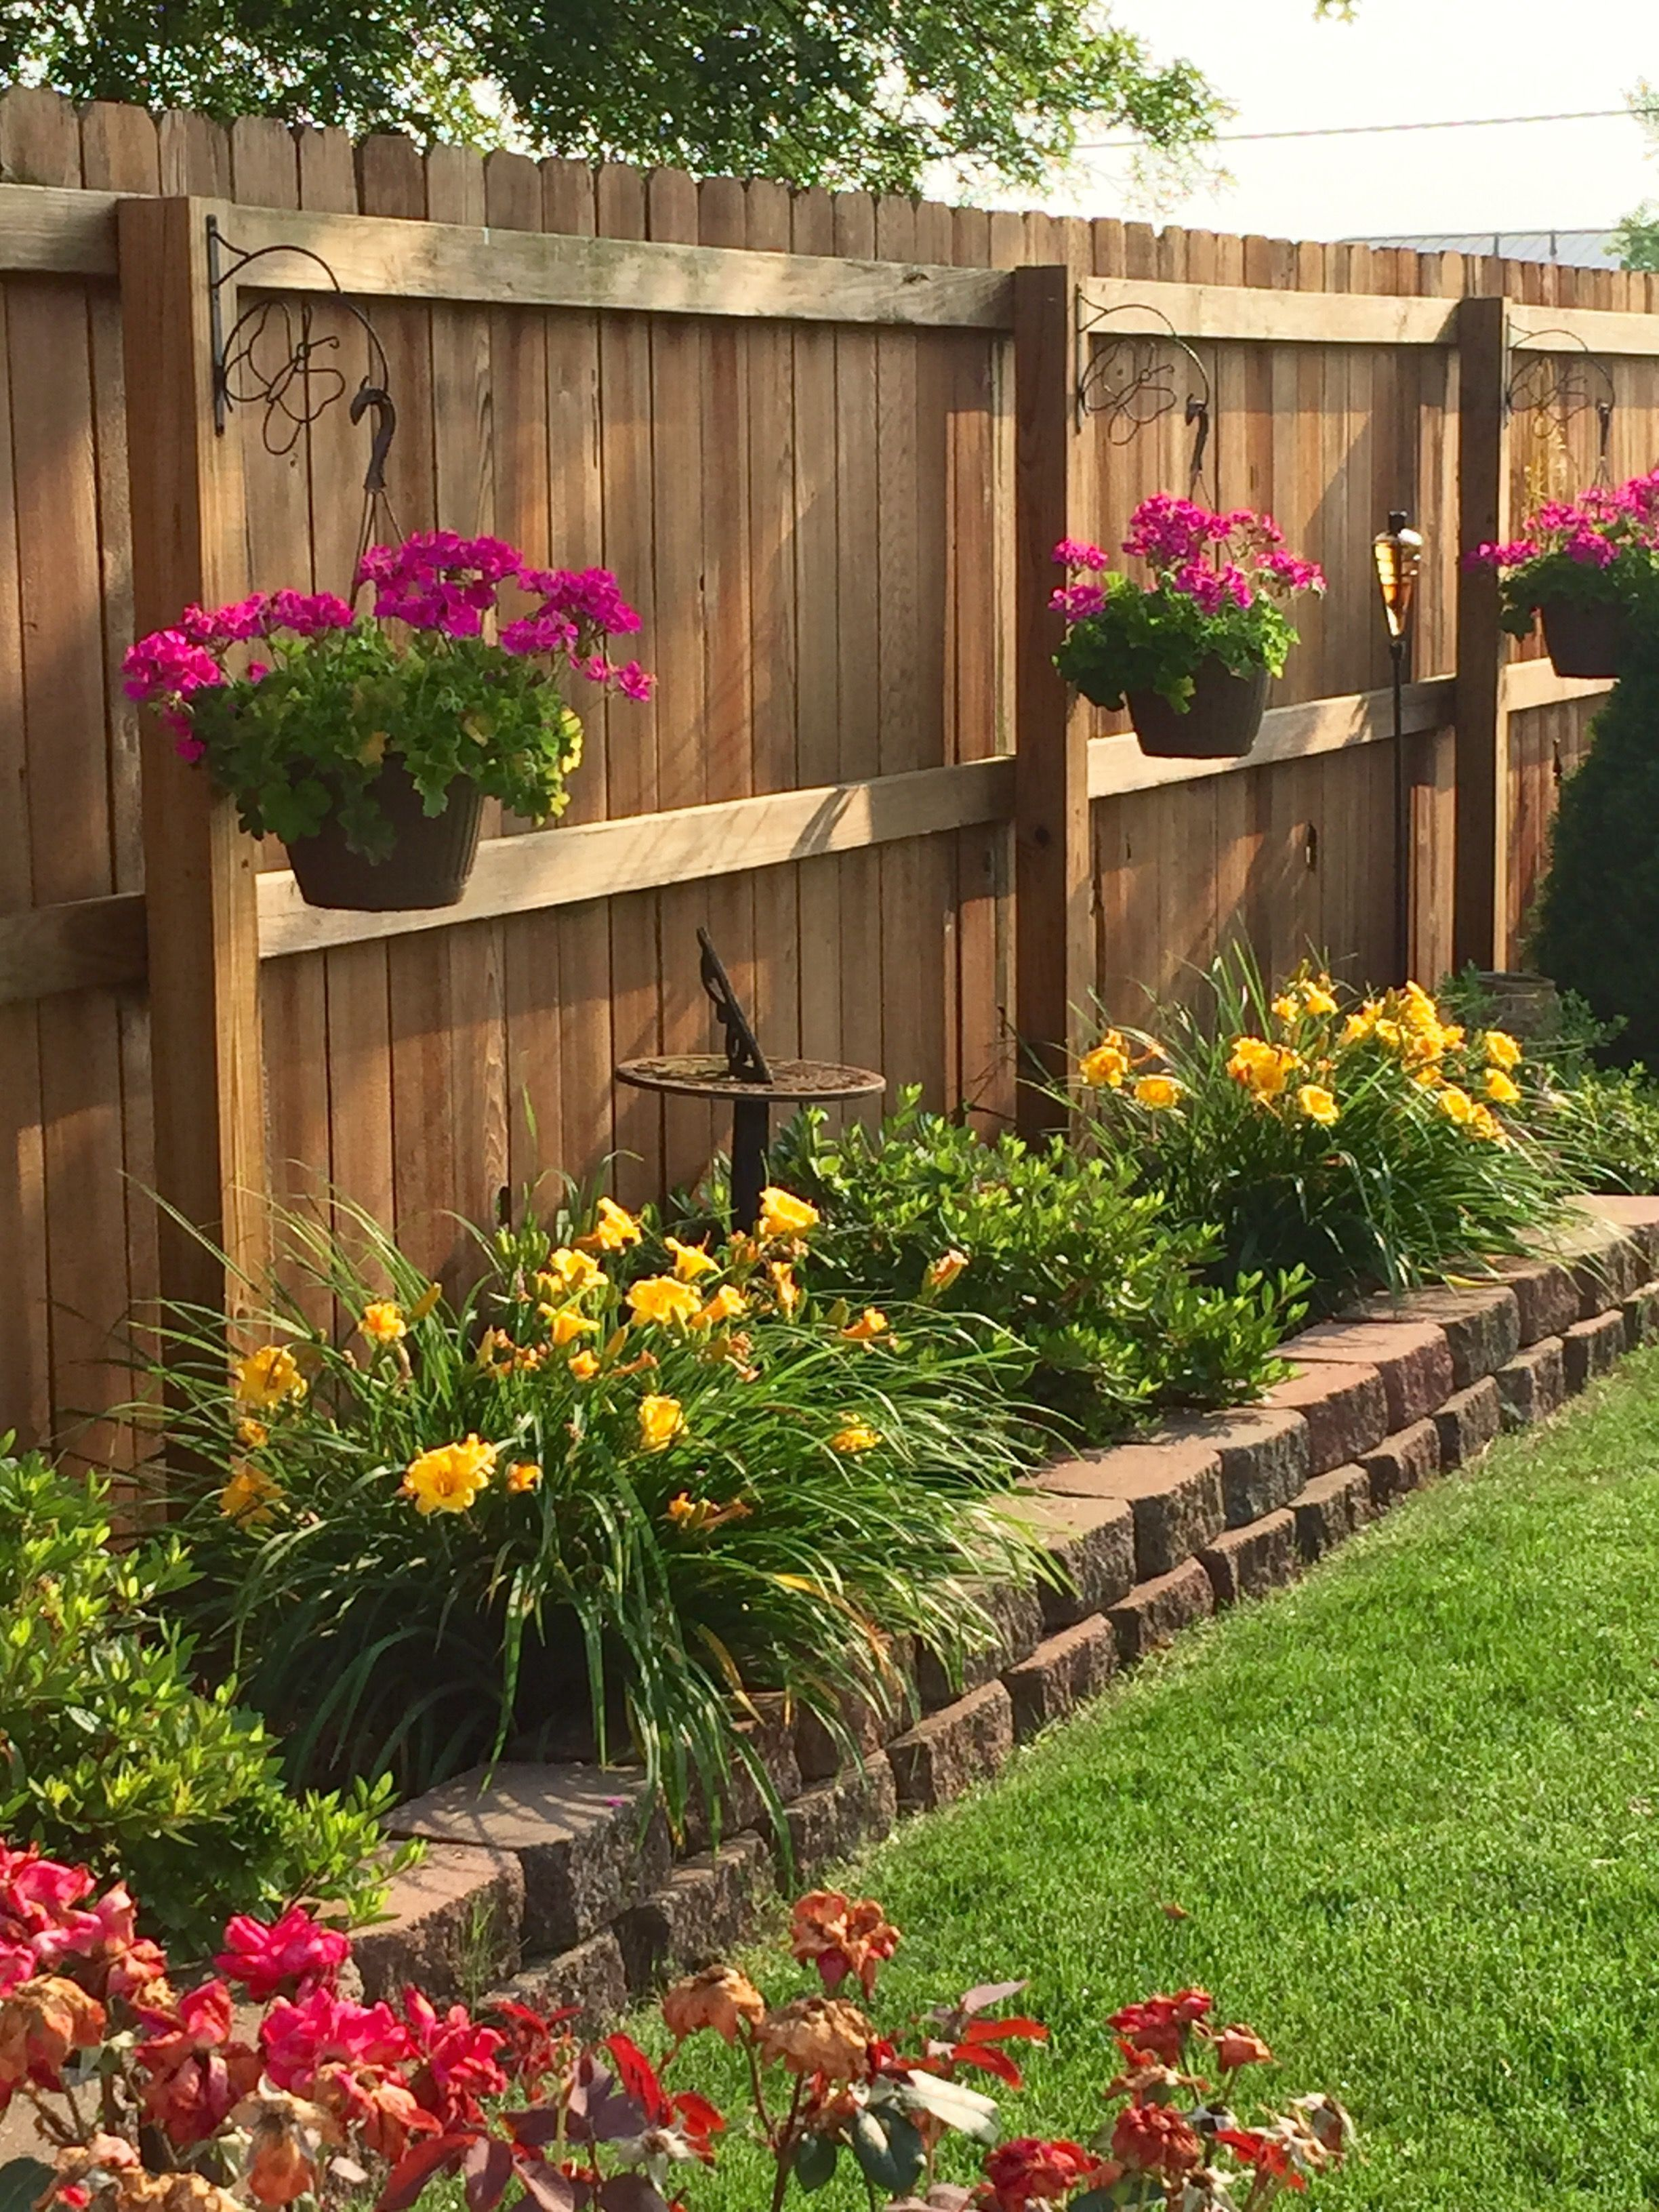 Backyard Landscaping Ideas Decor Around The World Inexpensive Backyard Ideas Small Backyard Gardens Small Backyard Landscaping Backyard landscaping ideas with raised beds